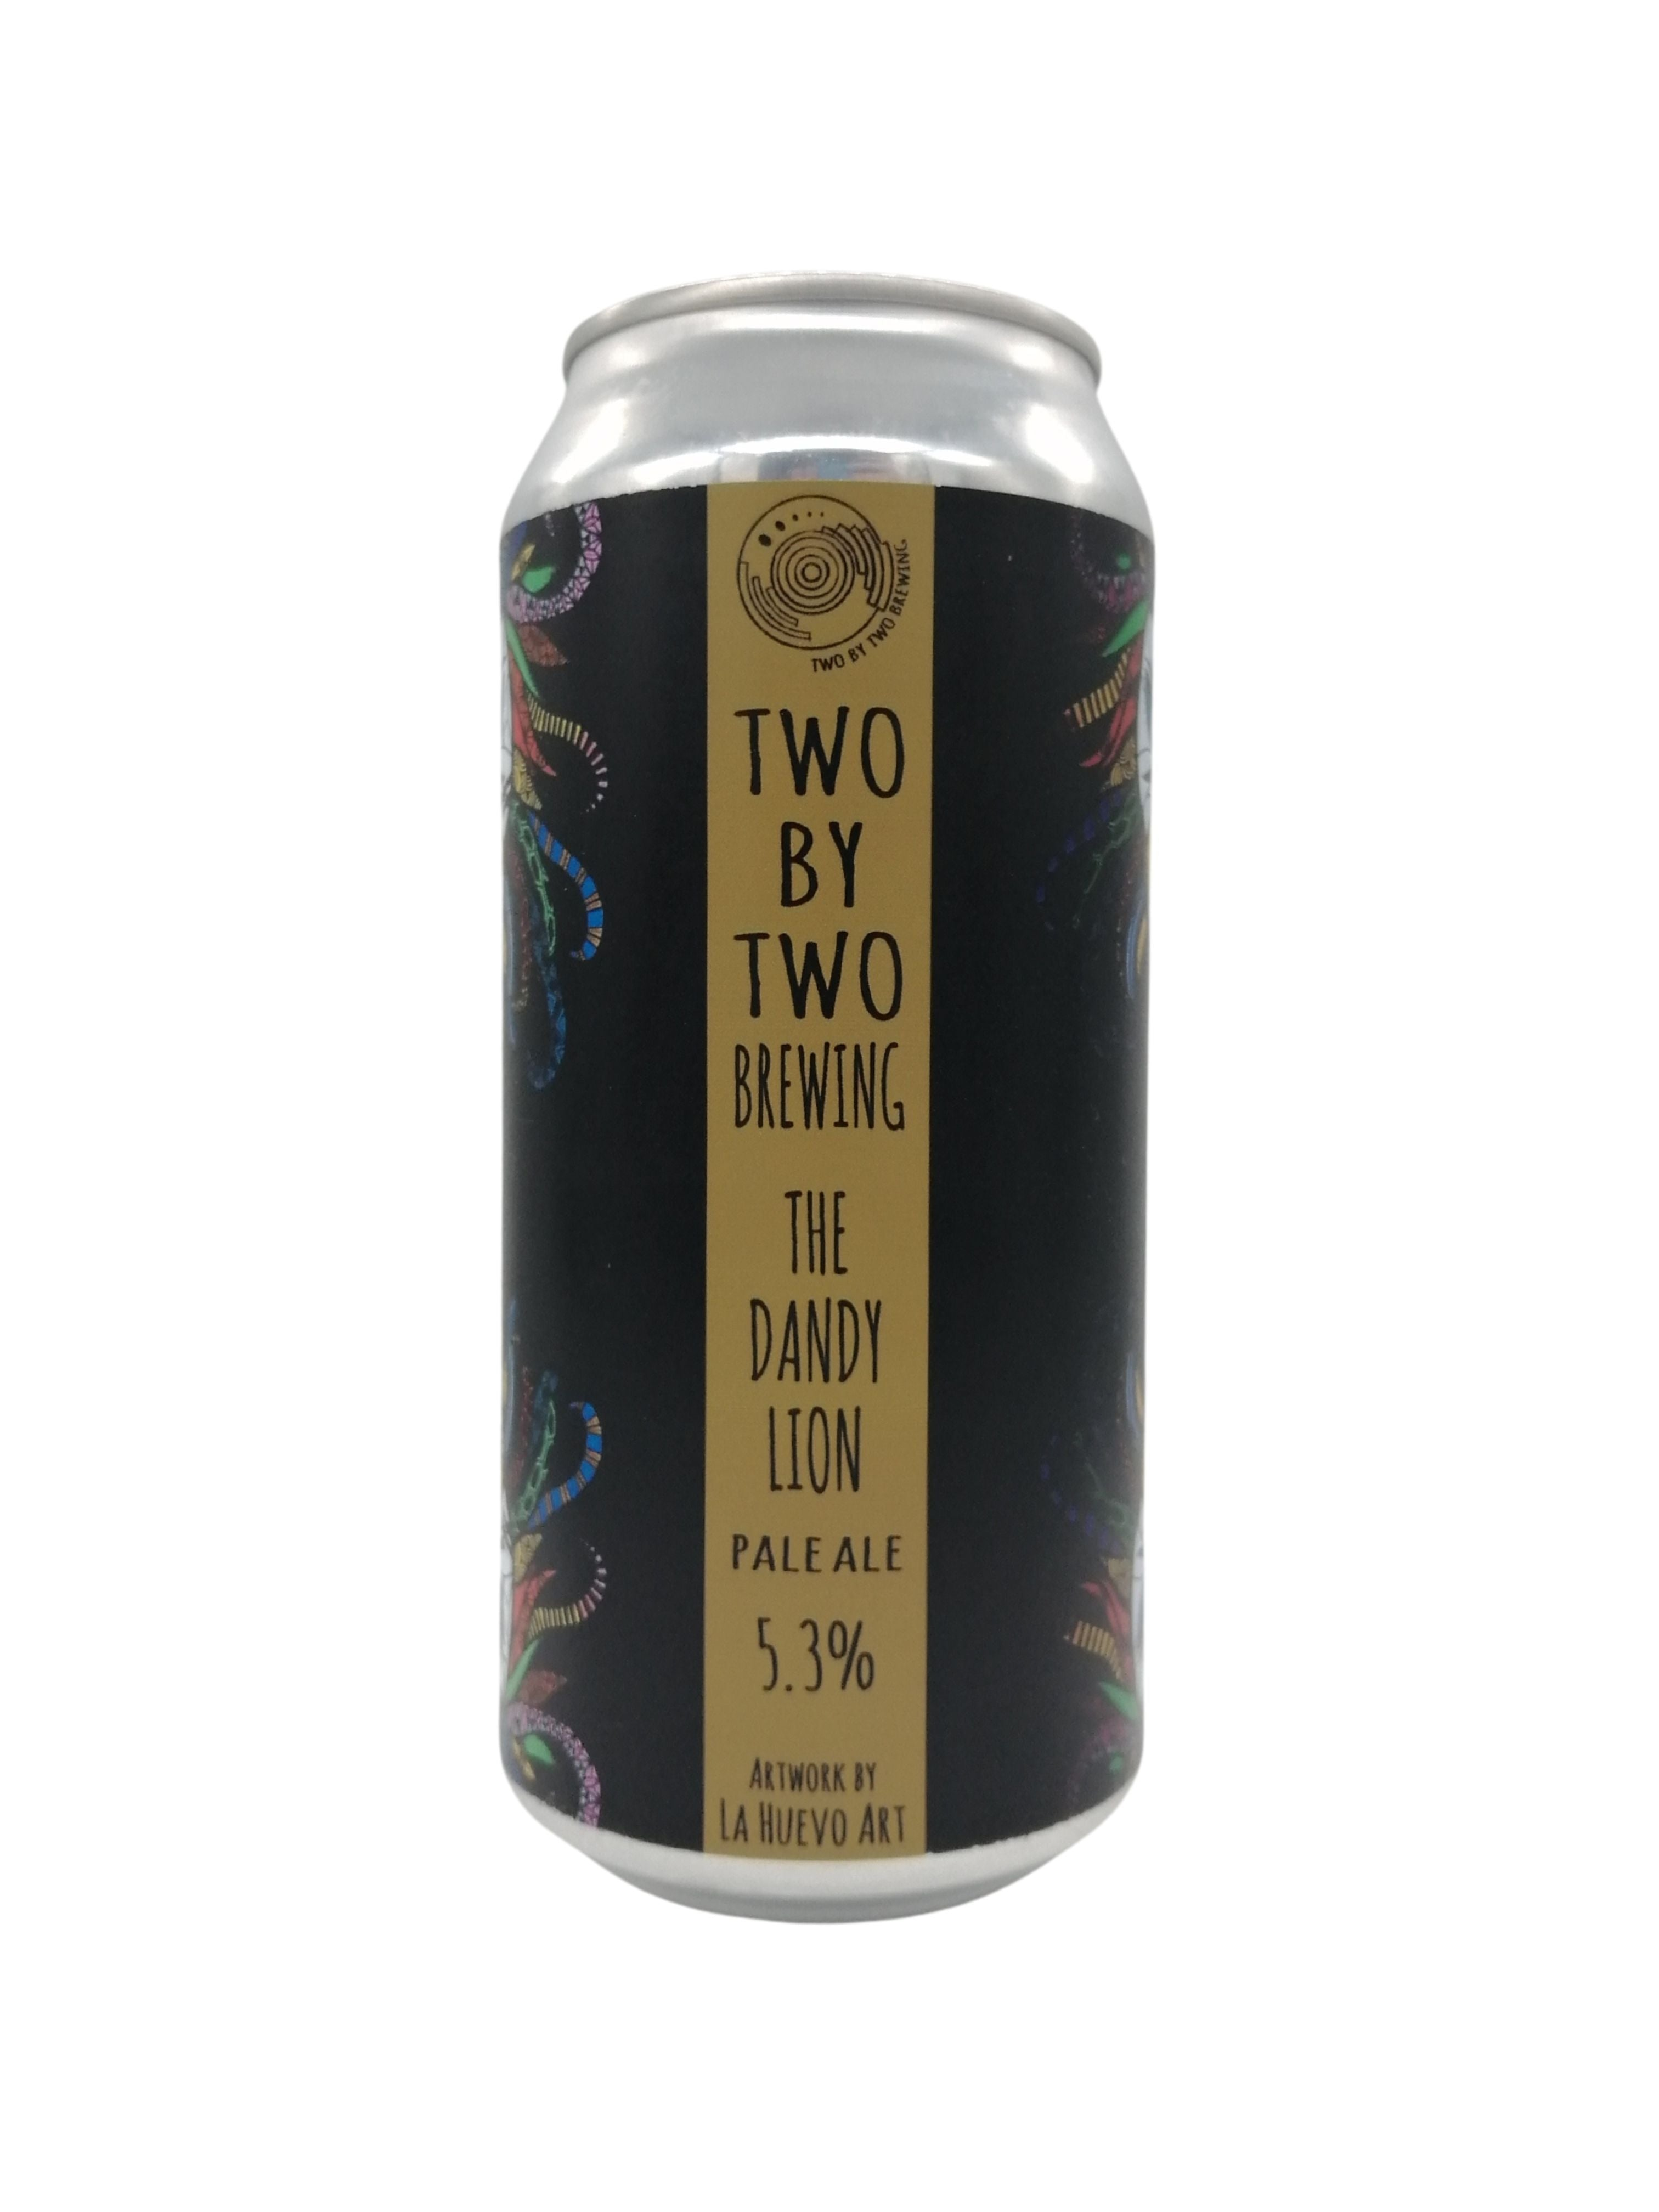 Two By Two - The Dandy Lion - Pale - 5.3% (3.91 UT)